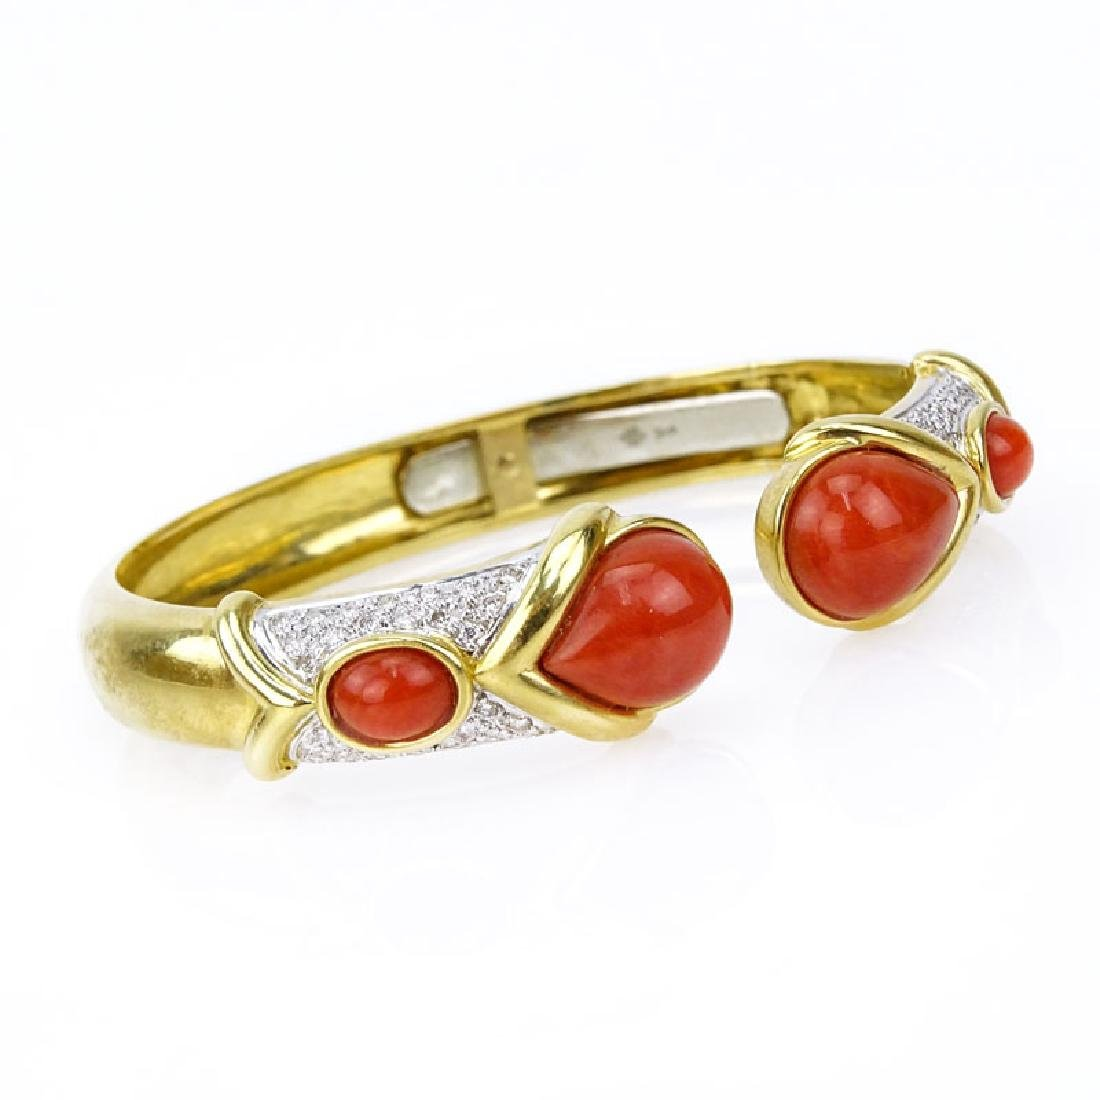 Vintage Italian 18 Karat Yellow Gold, Red Coral and